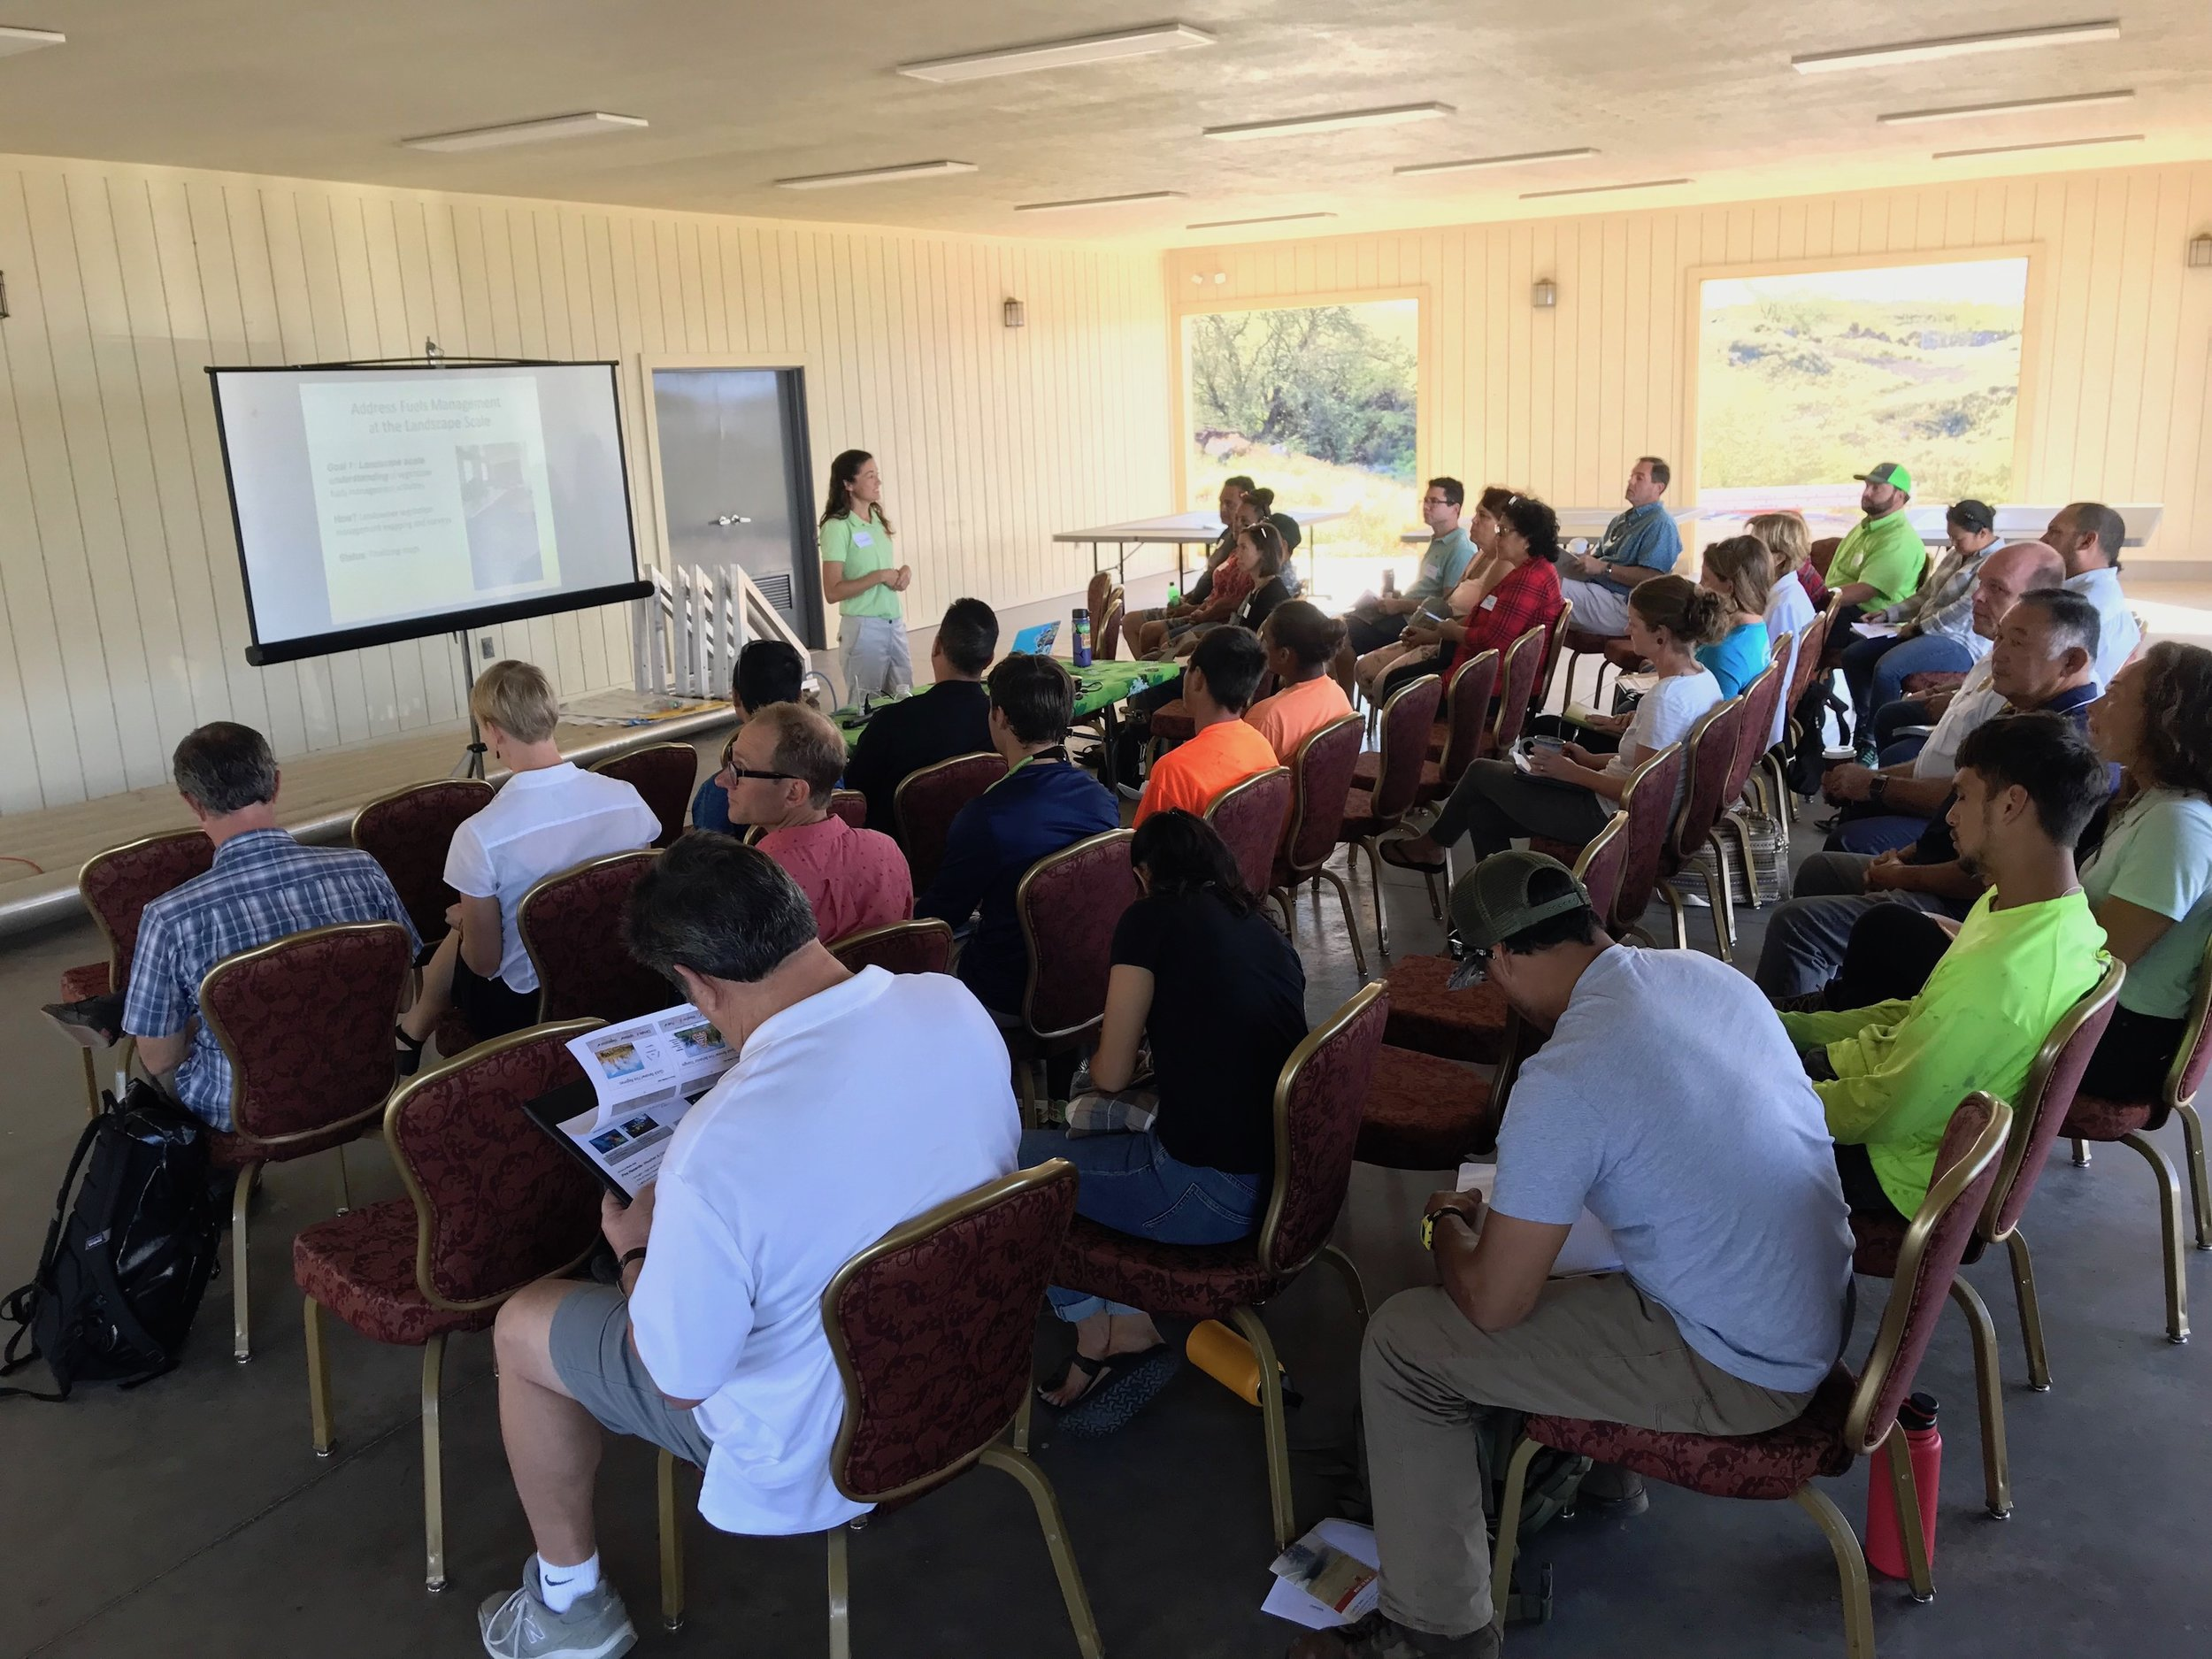 Hawaii Island Kailapa Vegetative Fuels Management Collaborative Action Planning Workshop_2_26_2019_17.jpg